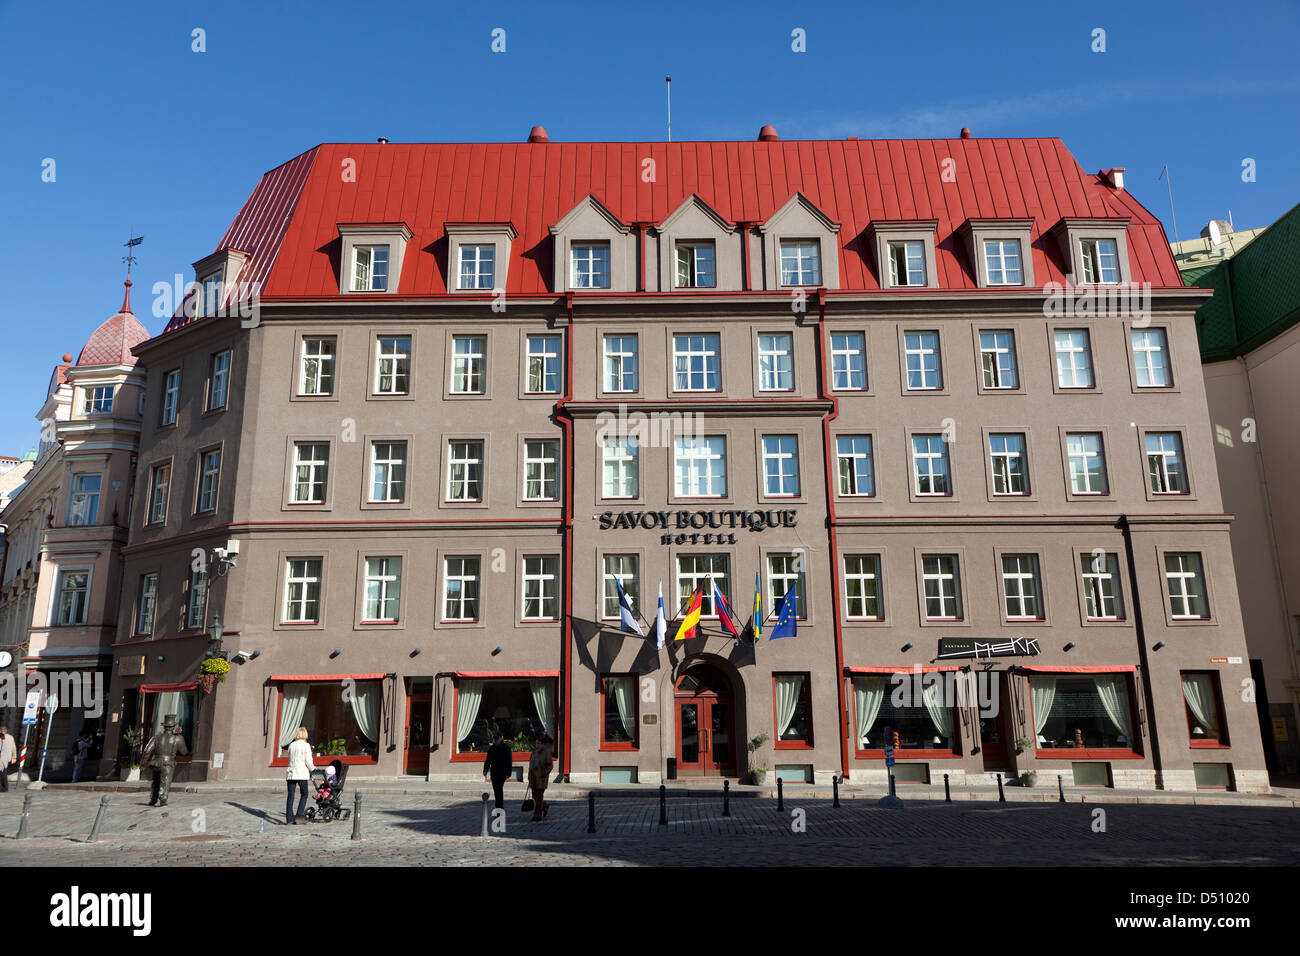 tallinn estonia the savoy boutique hotel in the old town stock photo 54726392 alamy. Black Bedroom Furniture Sets. Home Design Ideas